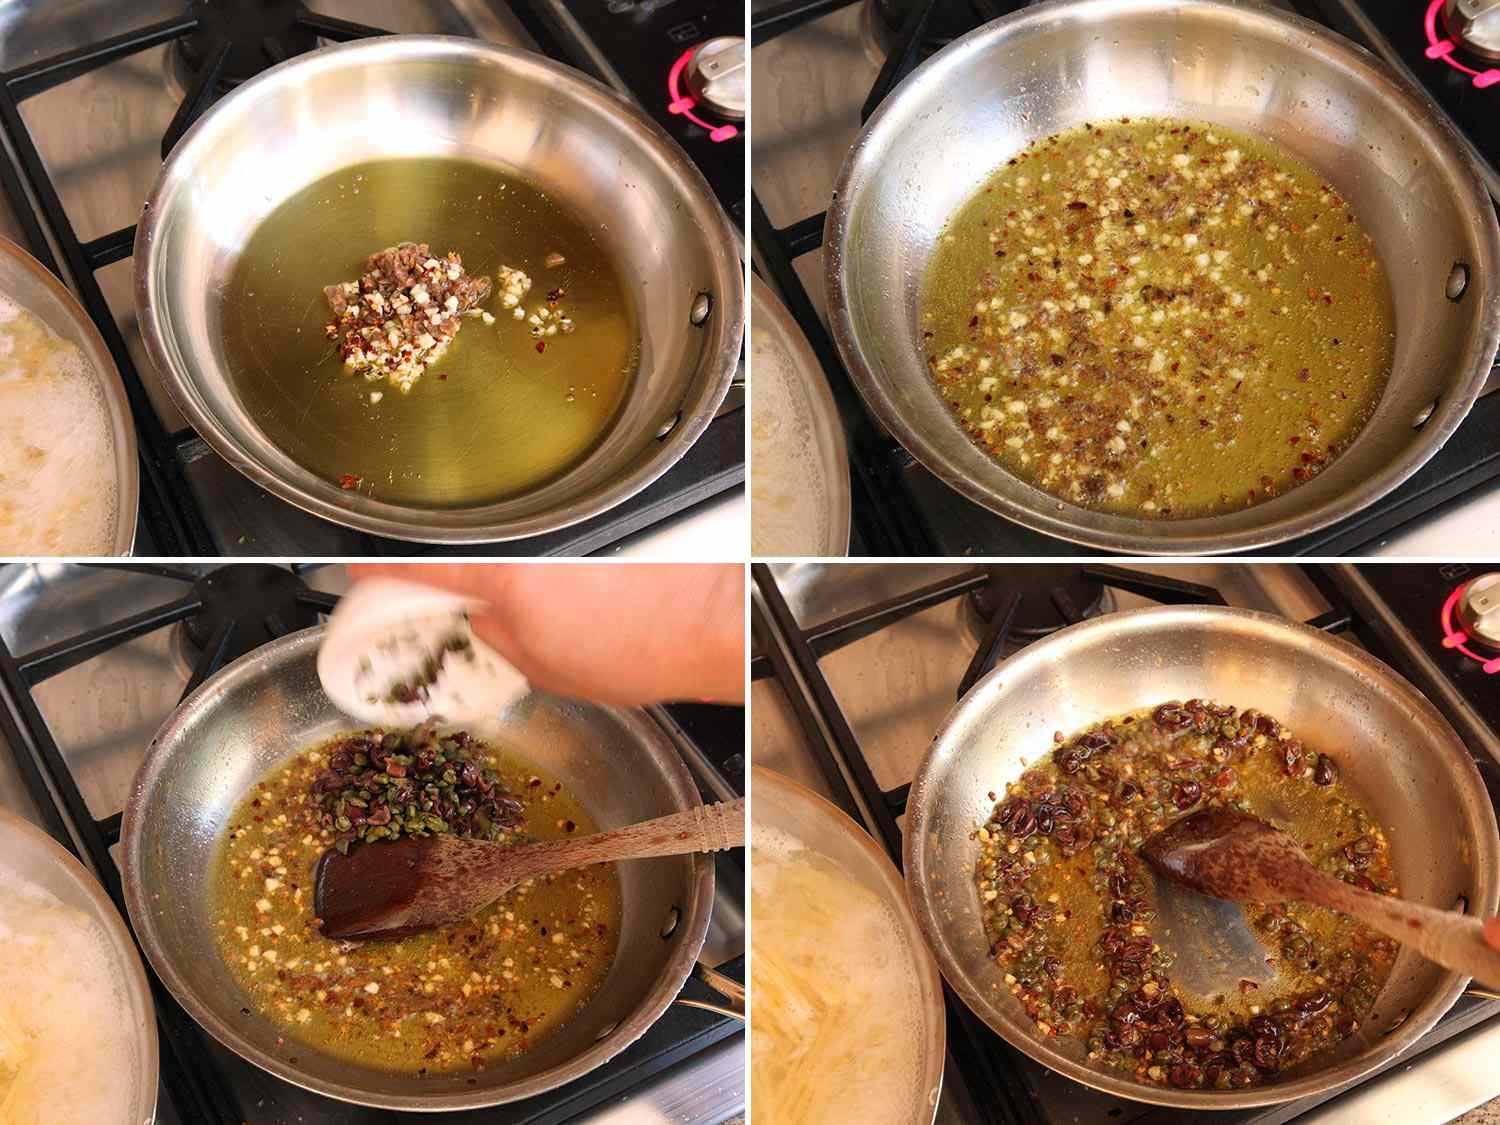 Photo collage showing sauteing garlic, anchovies, capers, and olives in olive oil for pasta puttanesca.